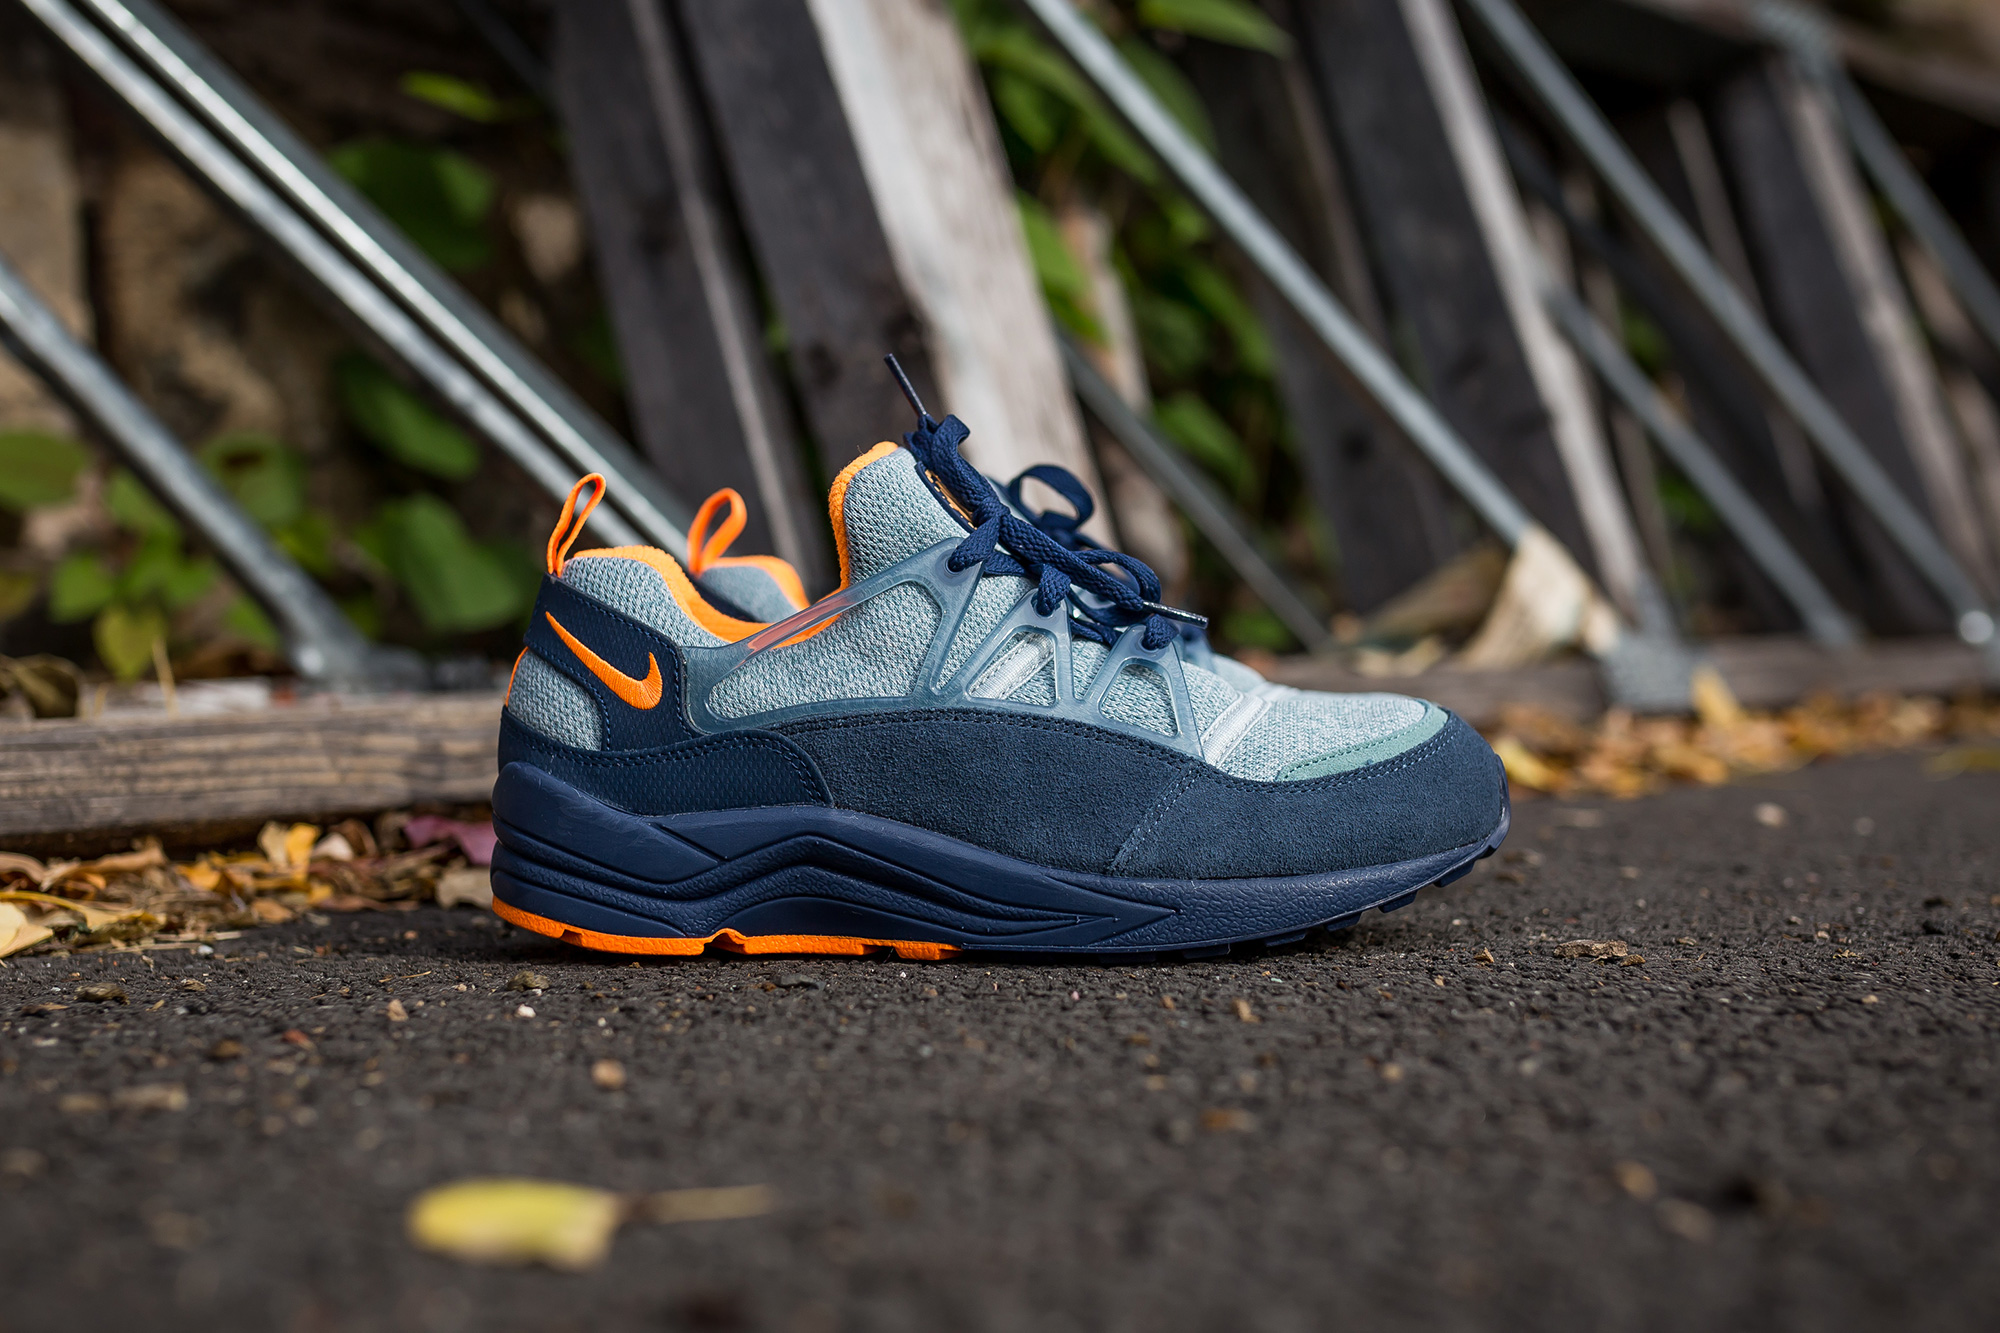 nike air huarache light midnight navy bright citrus packer shoes. Black Bedroom Furniture Sets. Home Design Ideas